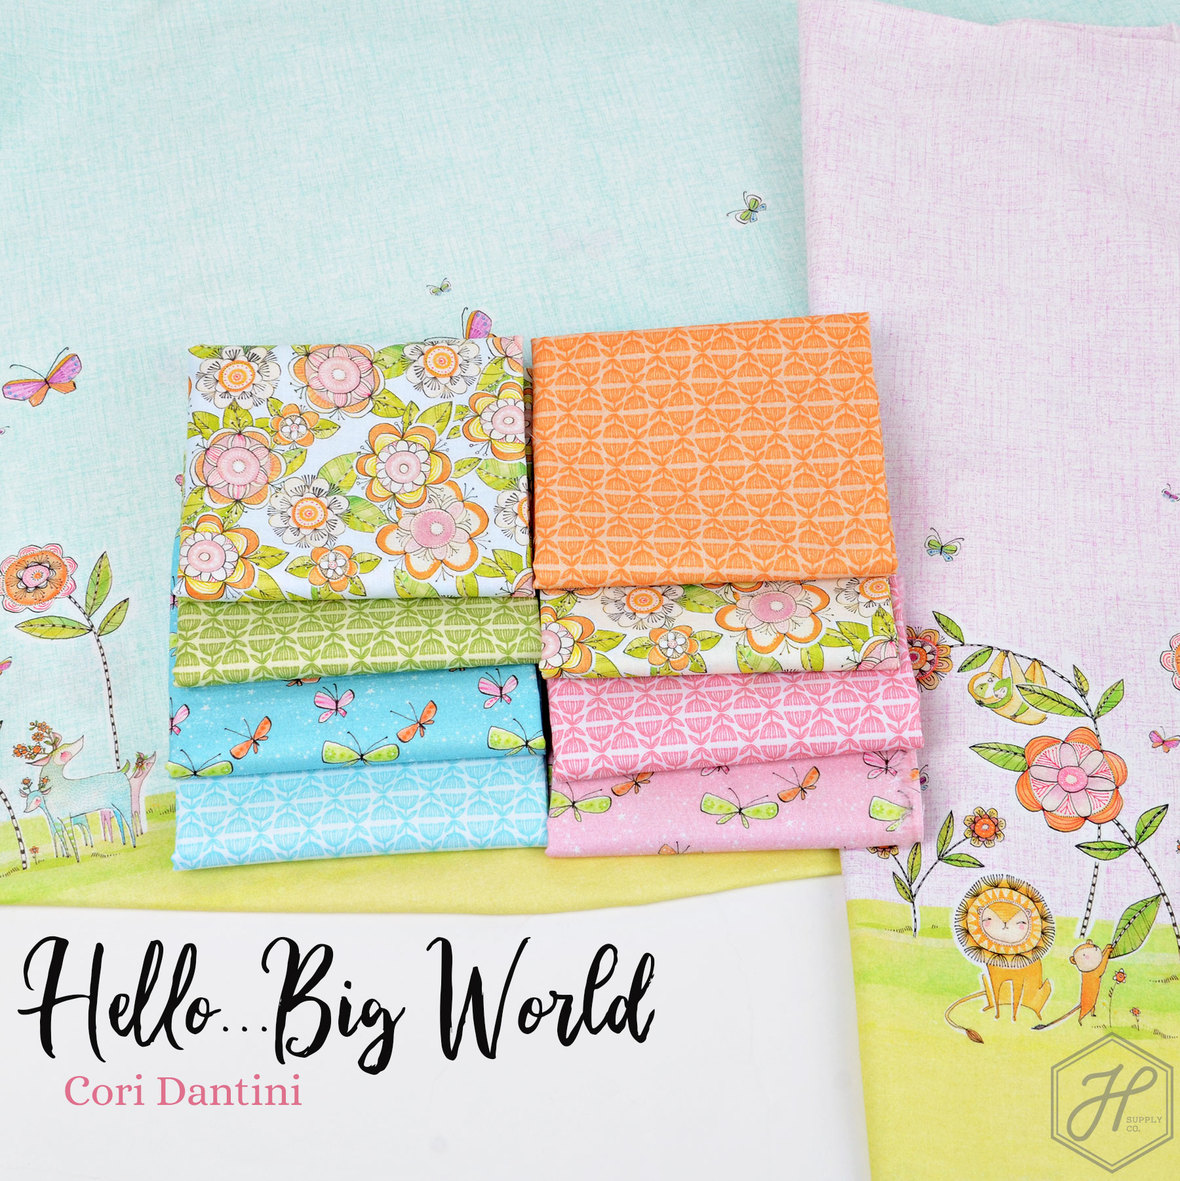 Hello-Big-World-Fabric-Cori-Dantini-for-Hawthorne-Supply-Co